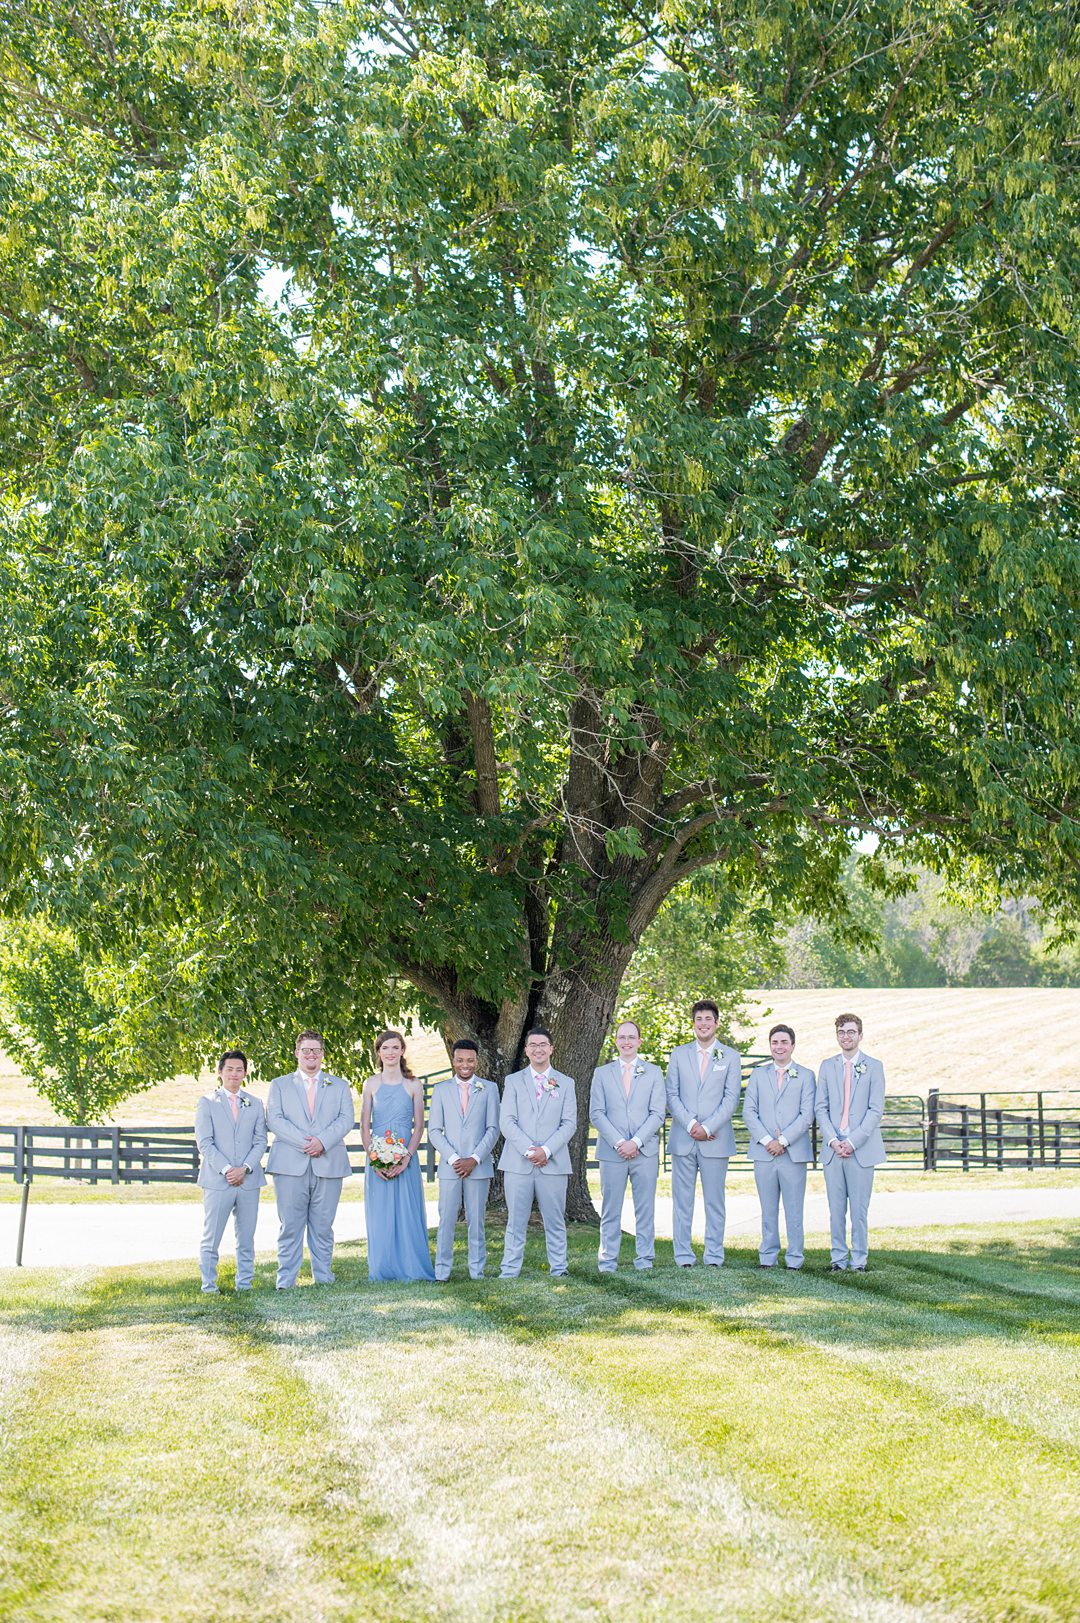 Groomsmen and wedding party for a small wedding in Charlottesville Virginia. Photos by Mikkel Paige Photography at the Lodge at Mount Ida Farm. #mikkelpaige #weddingparty #mountidafarm #charlottesvillewedding